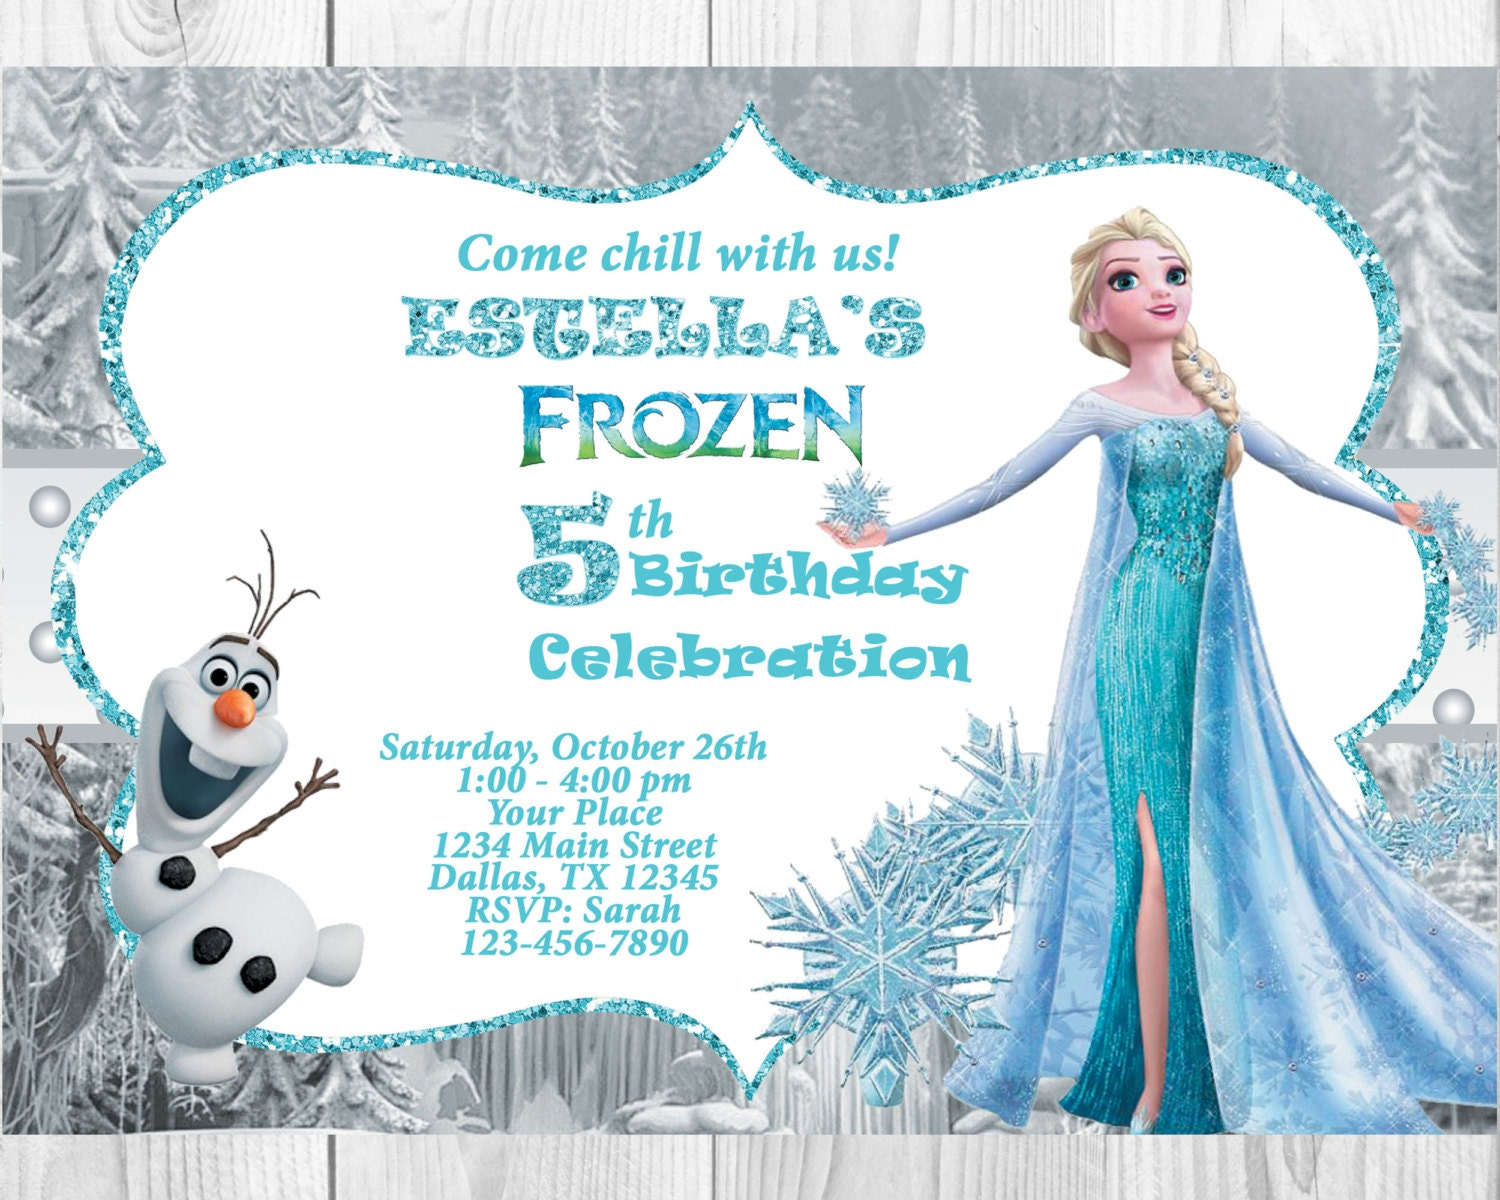 Frozen Birthday Invitation ElsaOlaf Frozen Invitation | Etsy